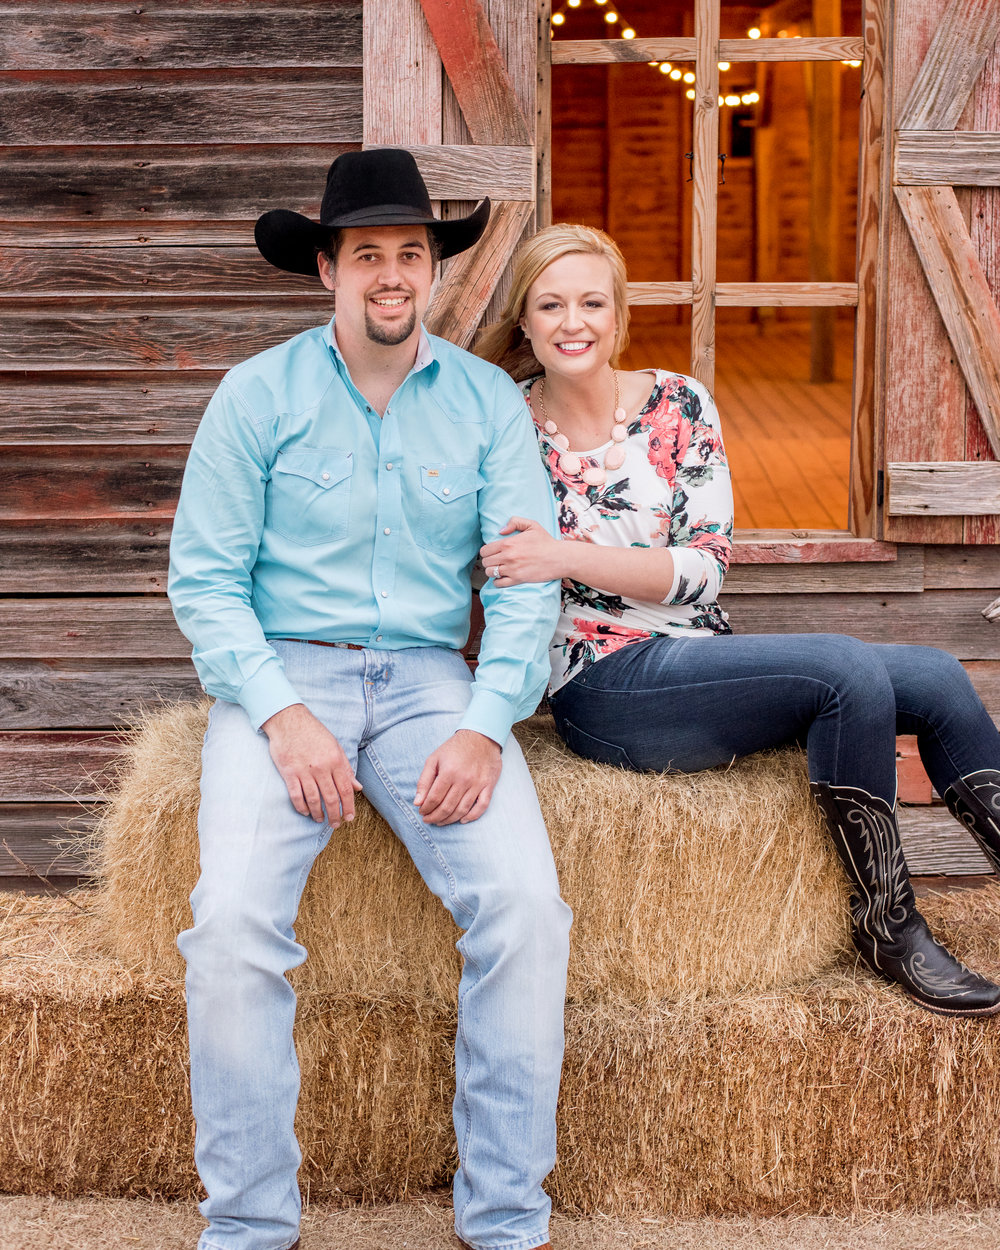 Kyle_Cayla_Engagement2017(82of117).jpg